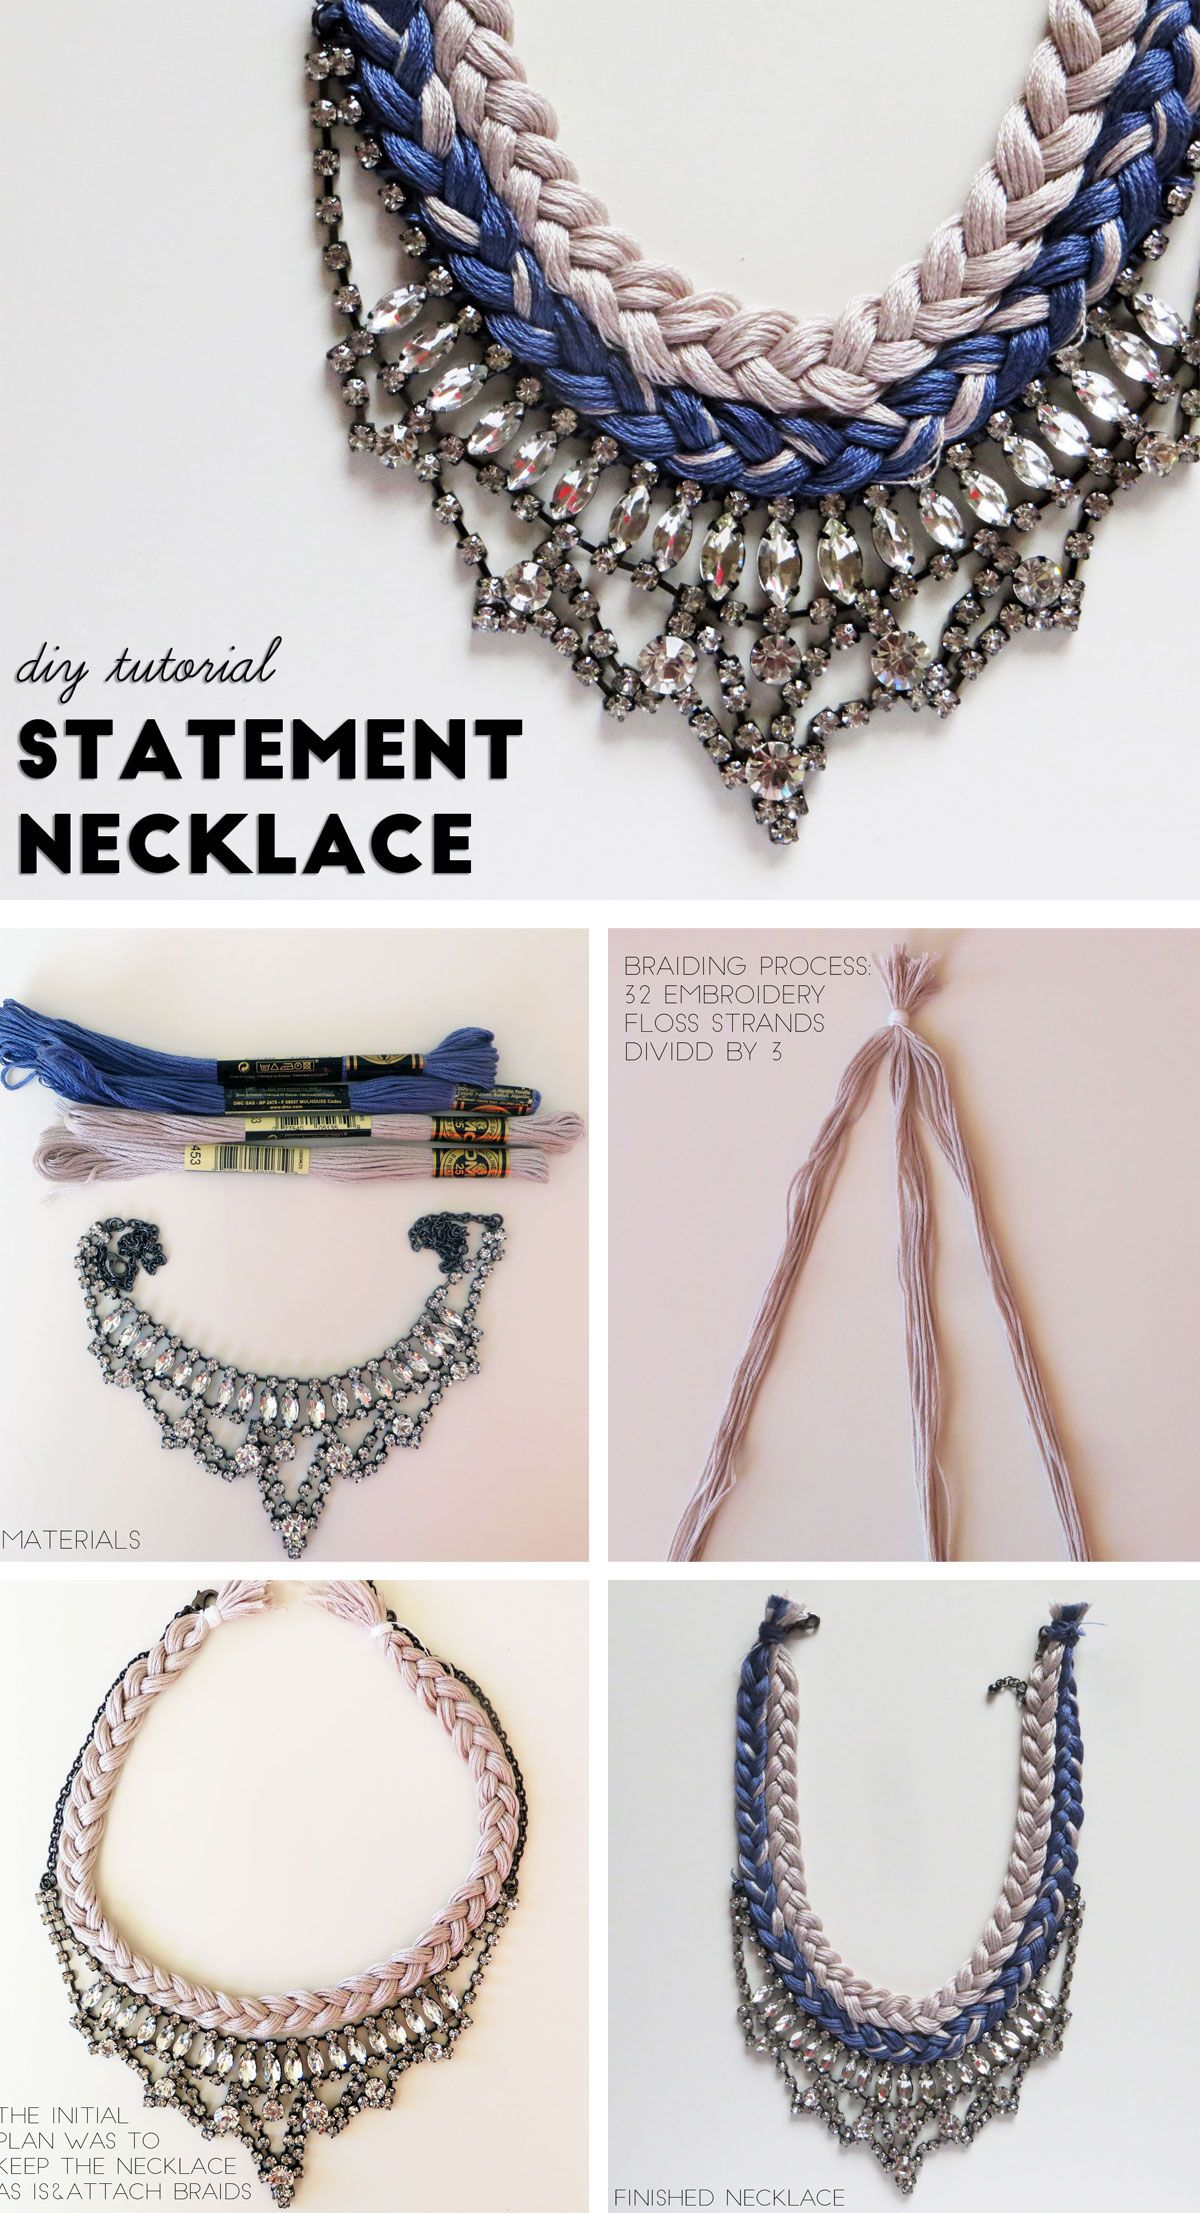 A simple DIY Statement necklace tutorial using a @forever21 necklace and @dmcreativeworld embroidery thread